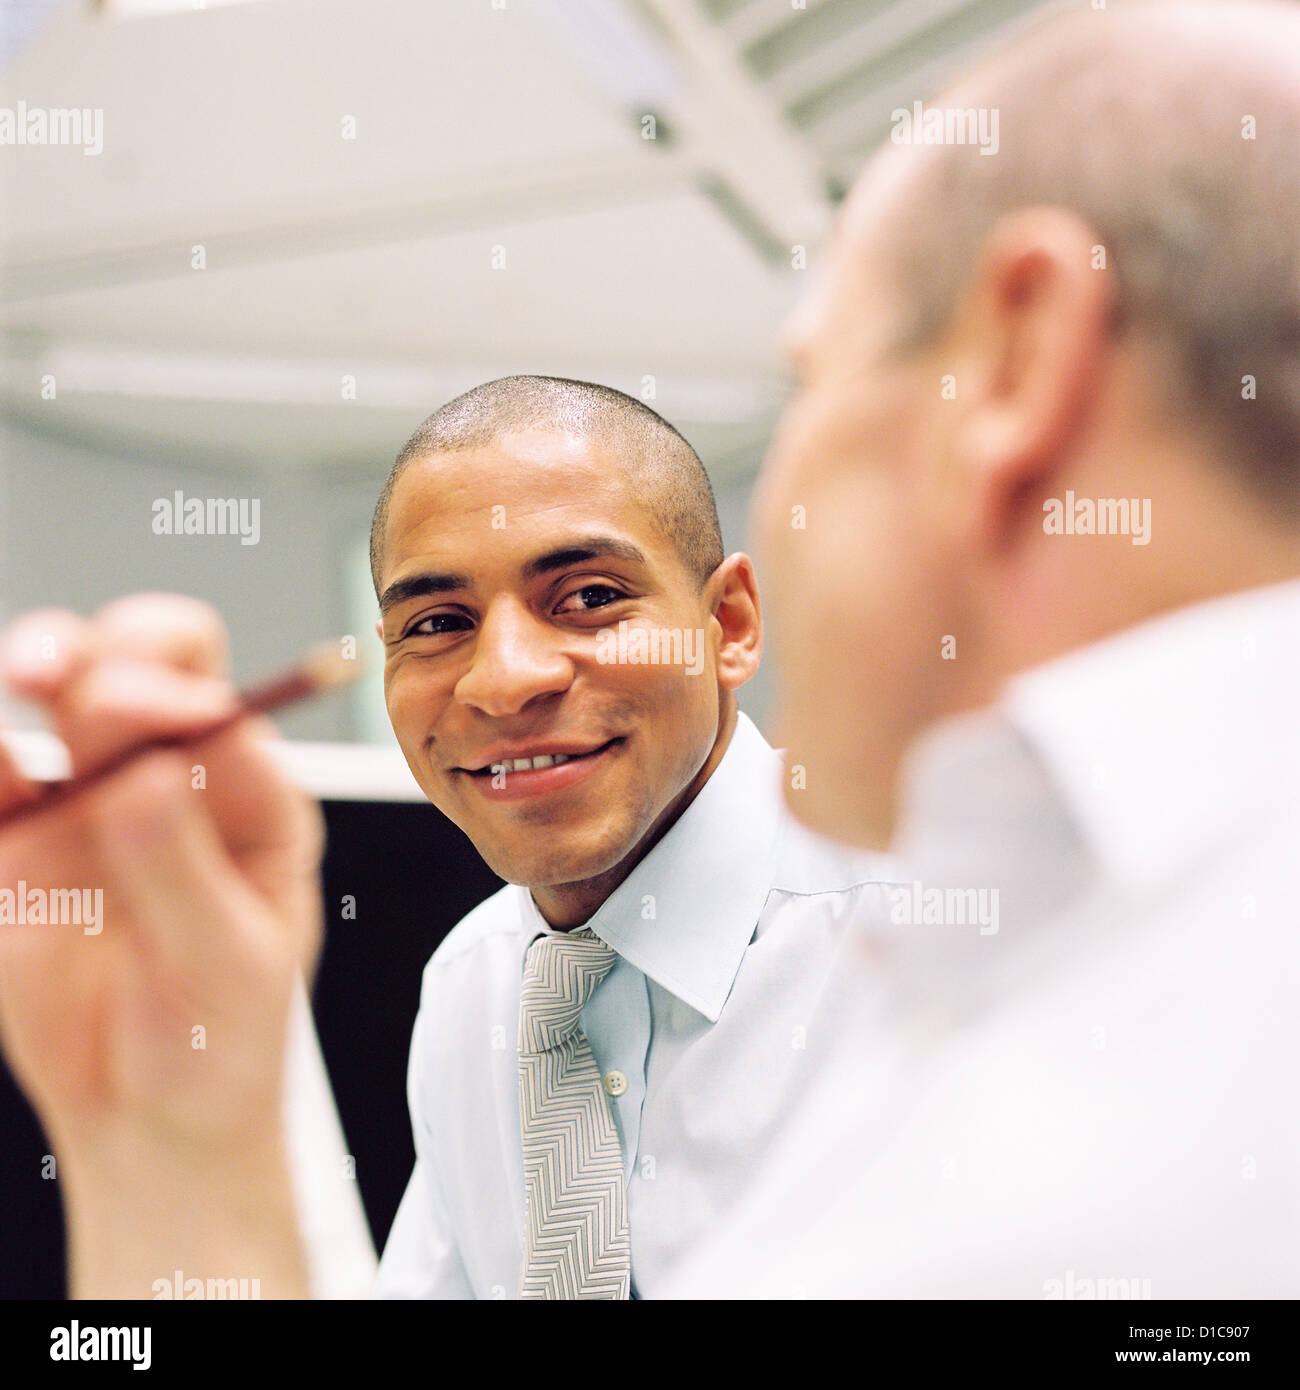 Business people data center control center man License free except ads and billboards Stock Photo